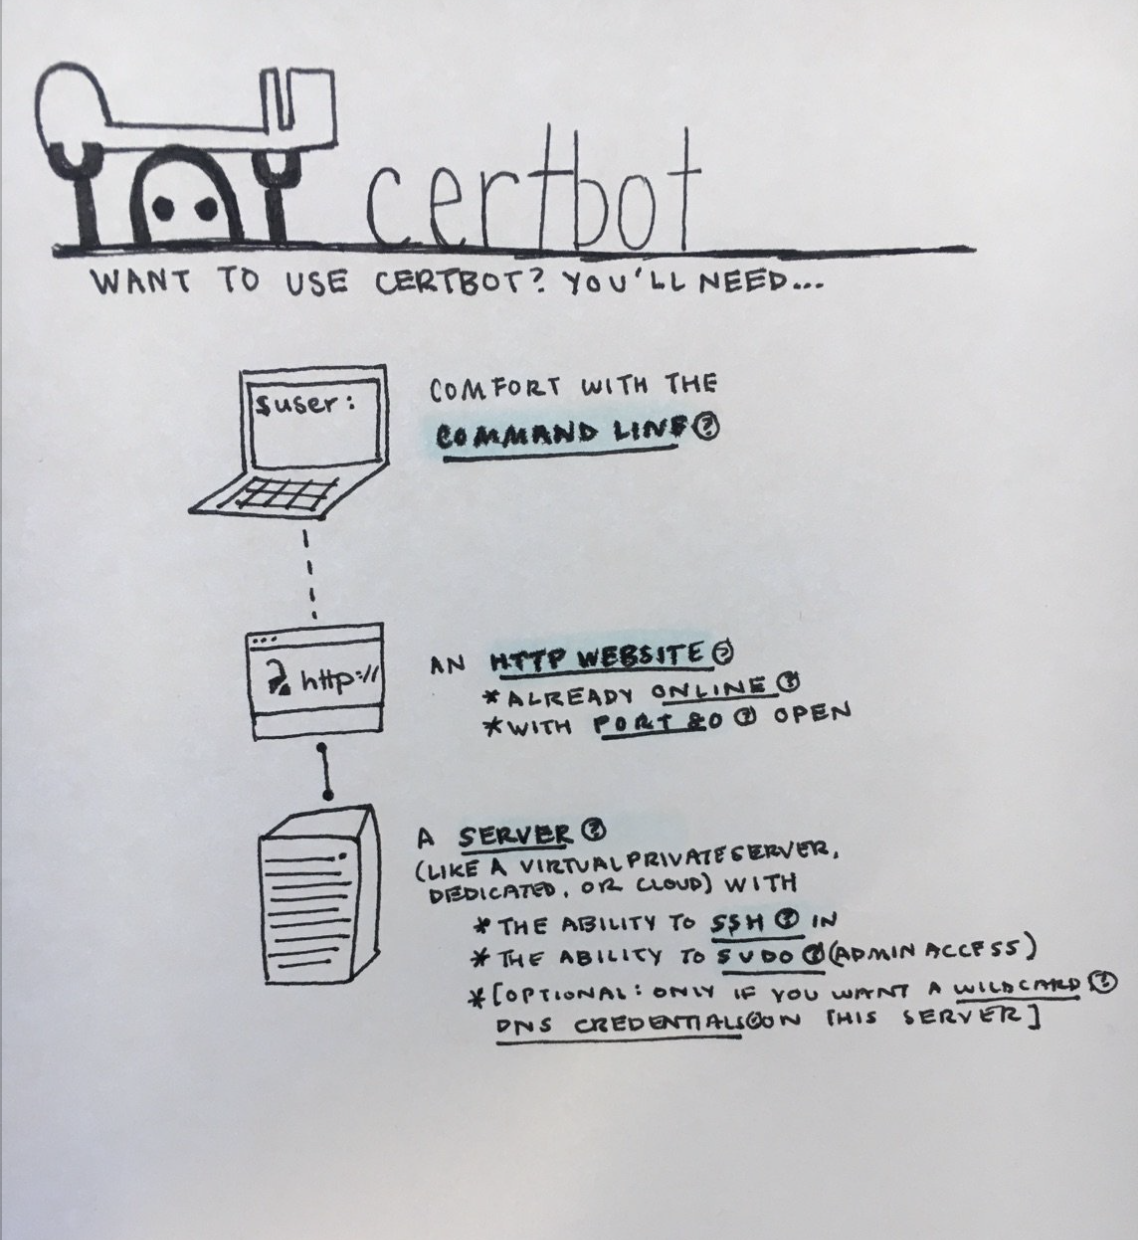 "A doodle of our explainer for Certbot, which includes an illustration of a laptop beside the text ""comfort with the command line,"" an illustration of a website beside the text ""an HTTP website that's already online with port 80 open,"" and an illustration of a server."